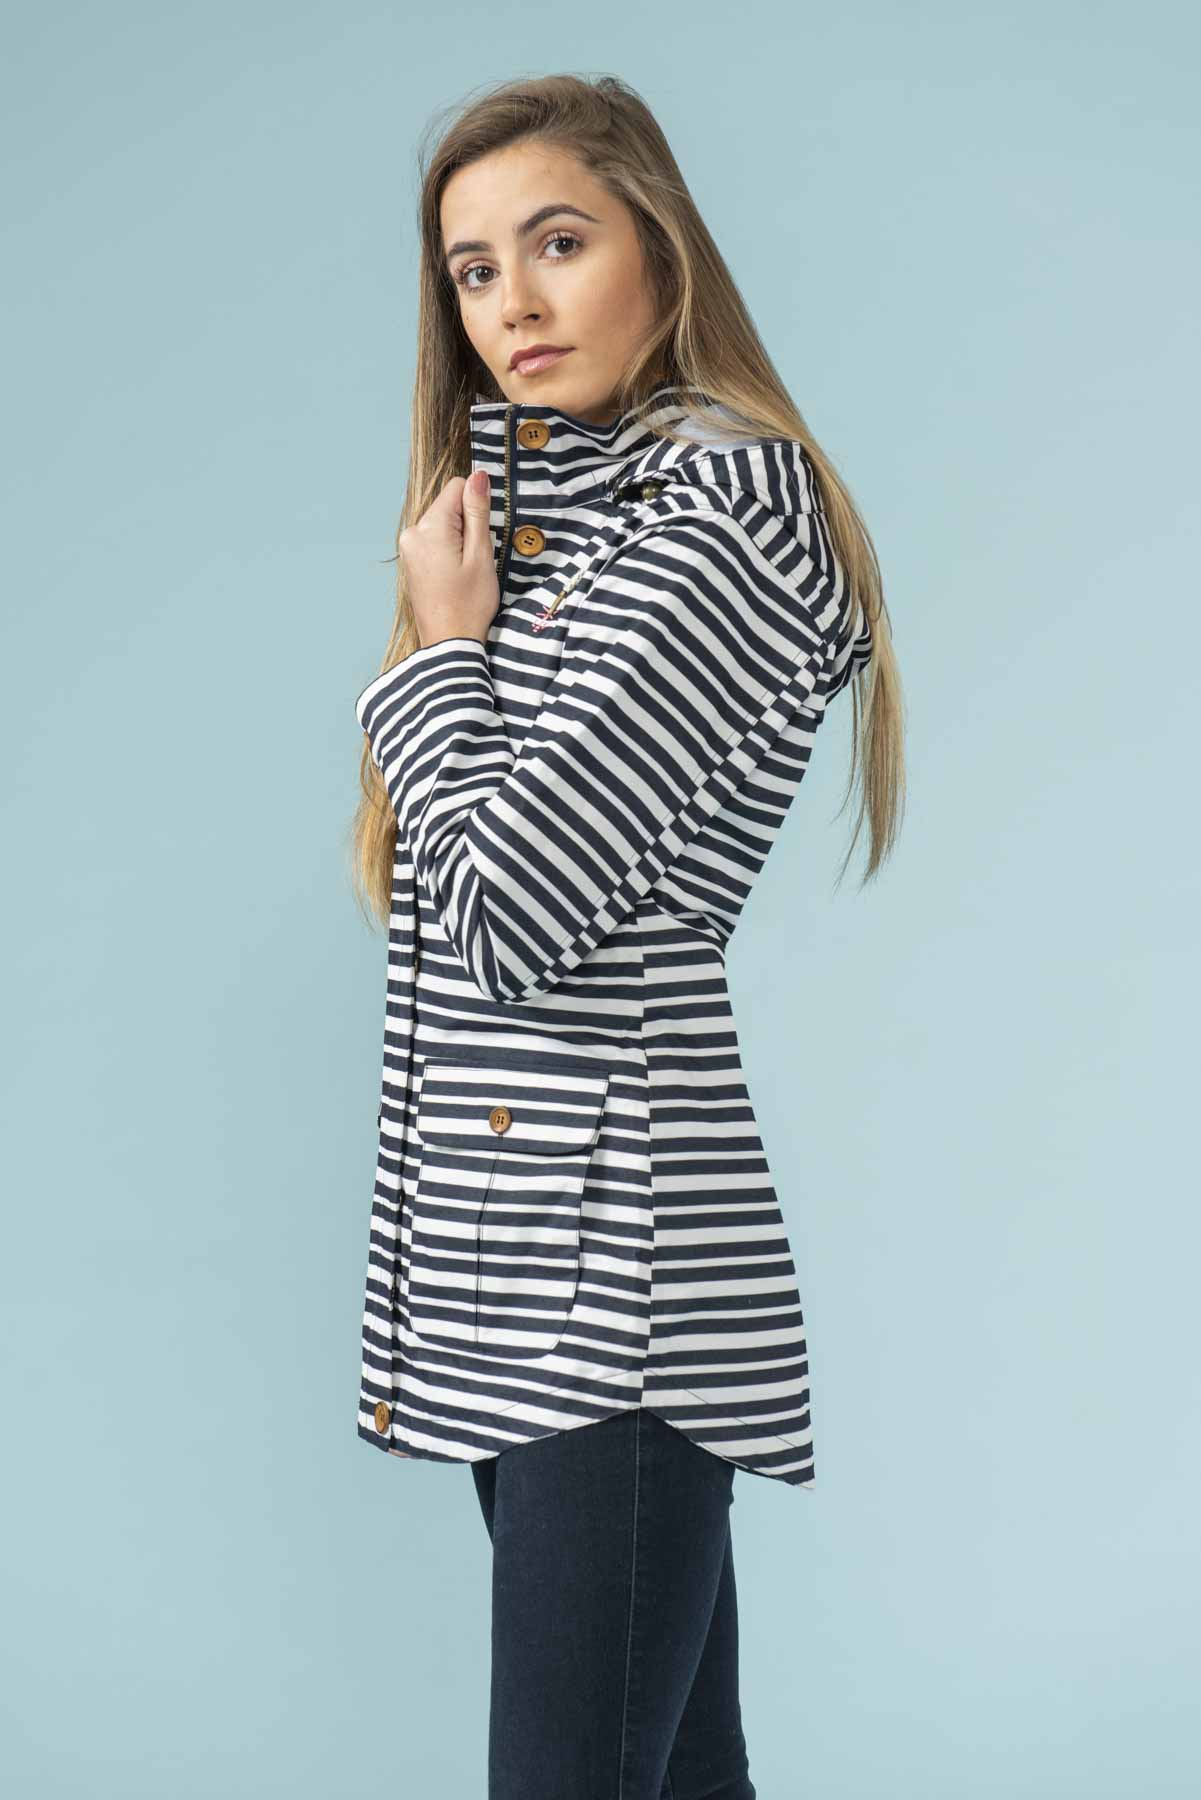 Women's Coats - Tori - Navy White Stripe Raincoat